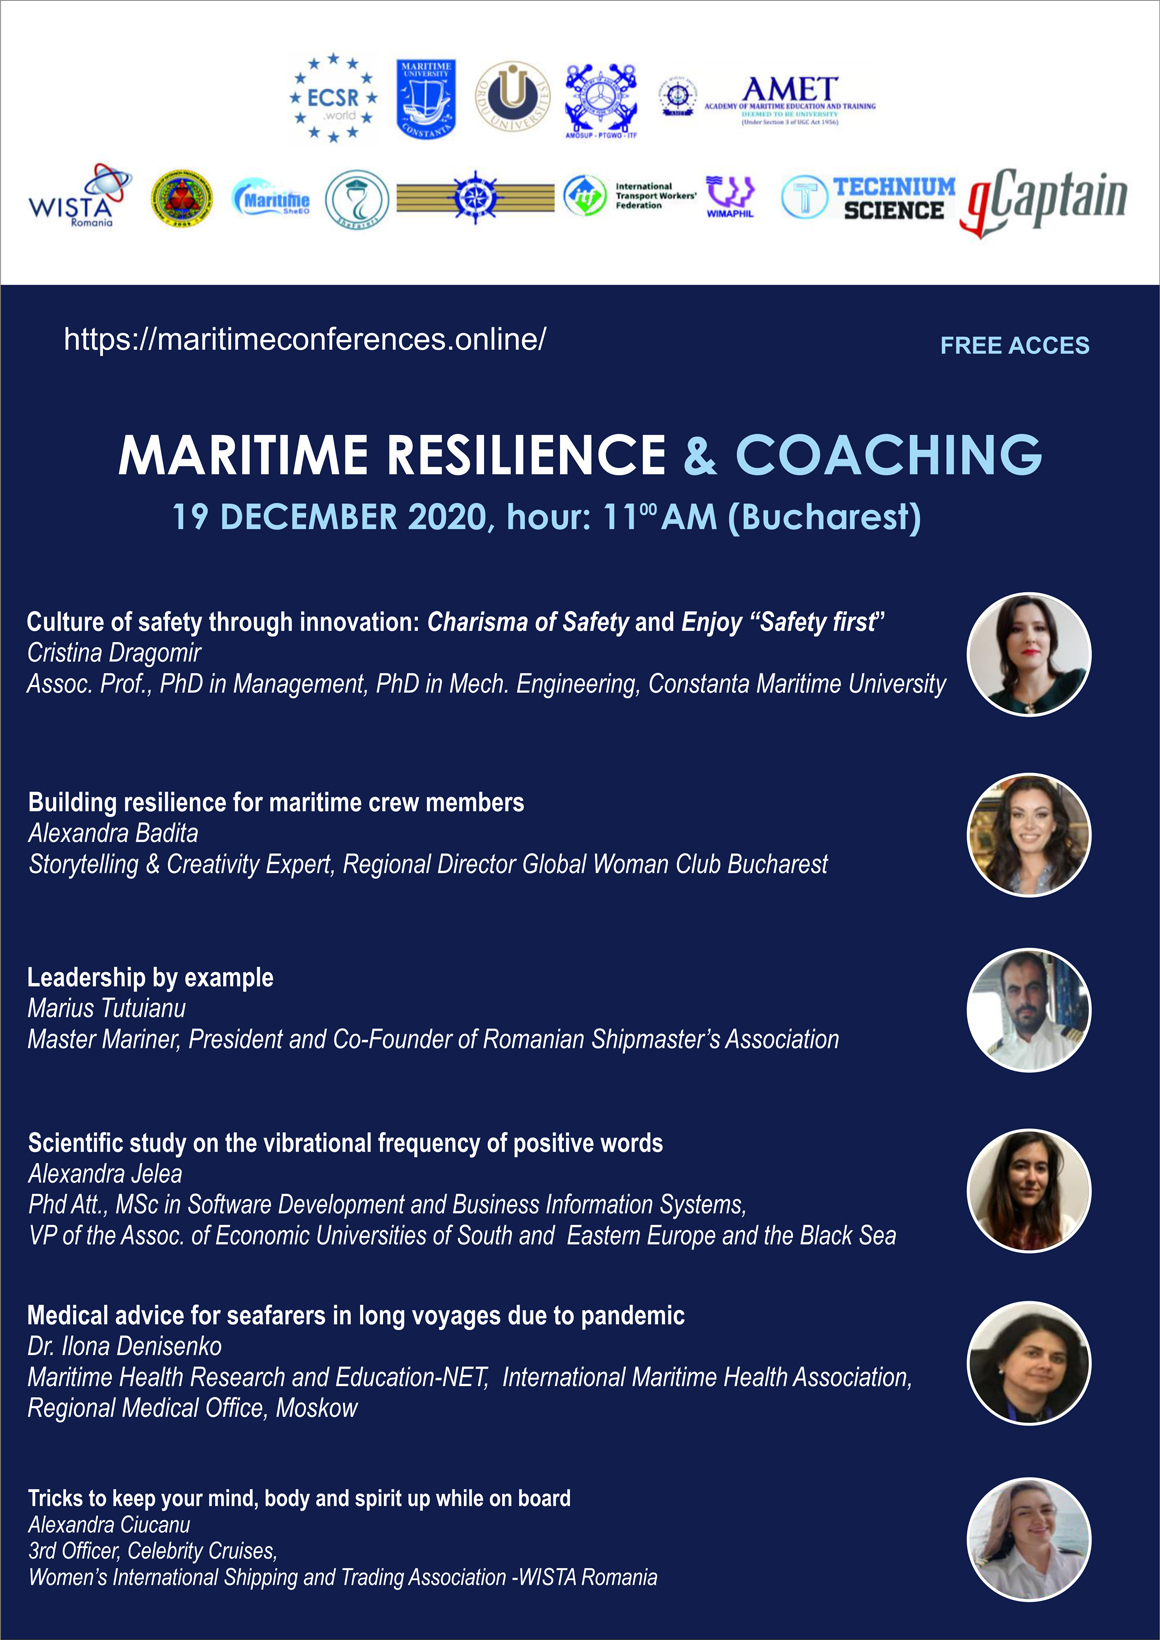 19 Dec 2020 – Maritime Resilience & Coaching